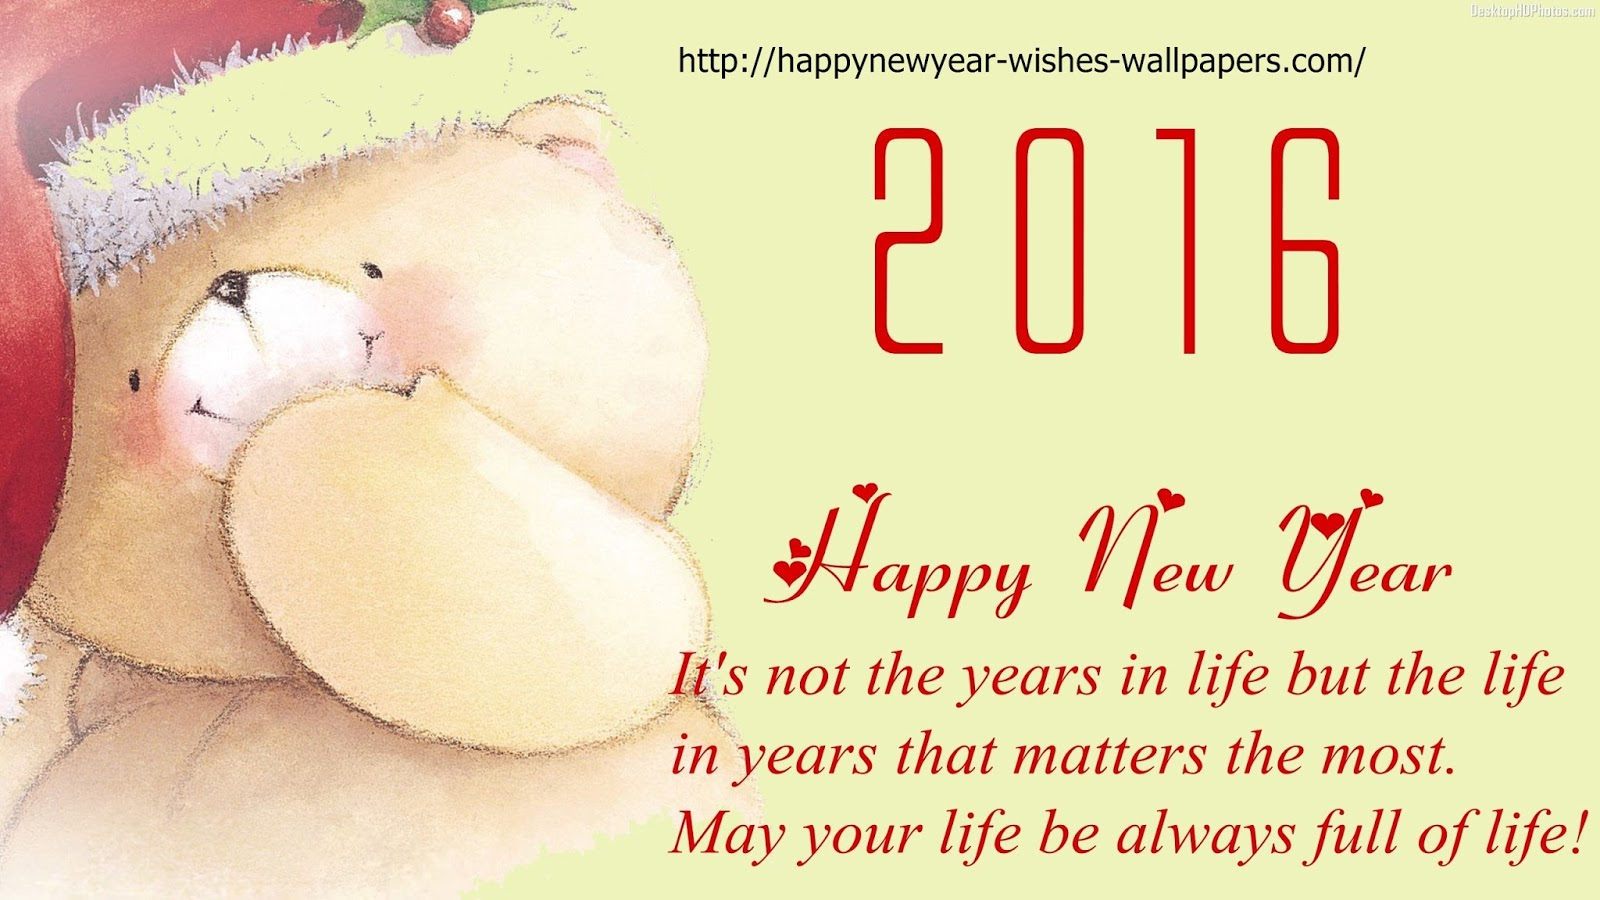 New year 2016 wallpapers wishes happy new year gretings card happy new year gretings card designs for your family hd images kristyandbryce Gallery